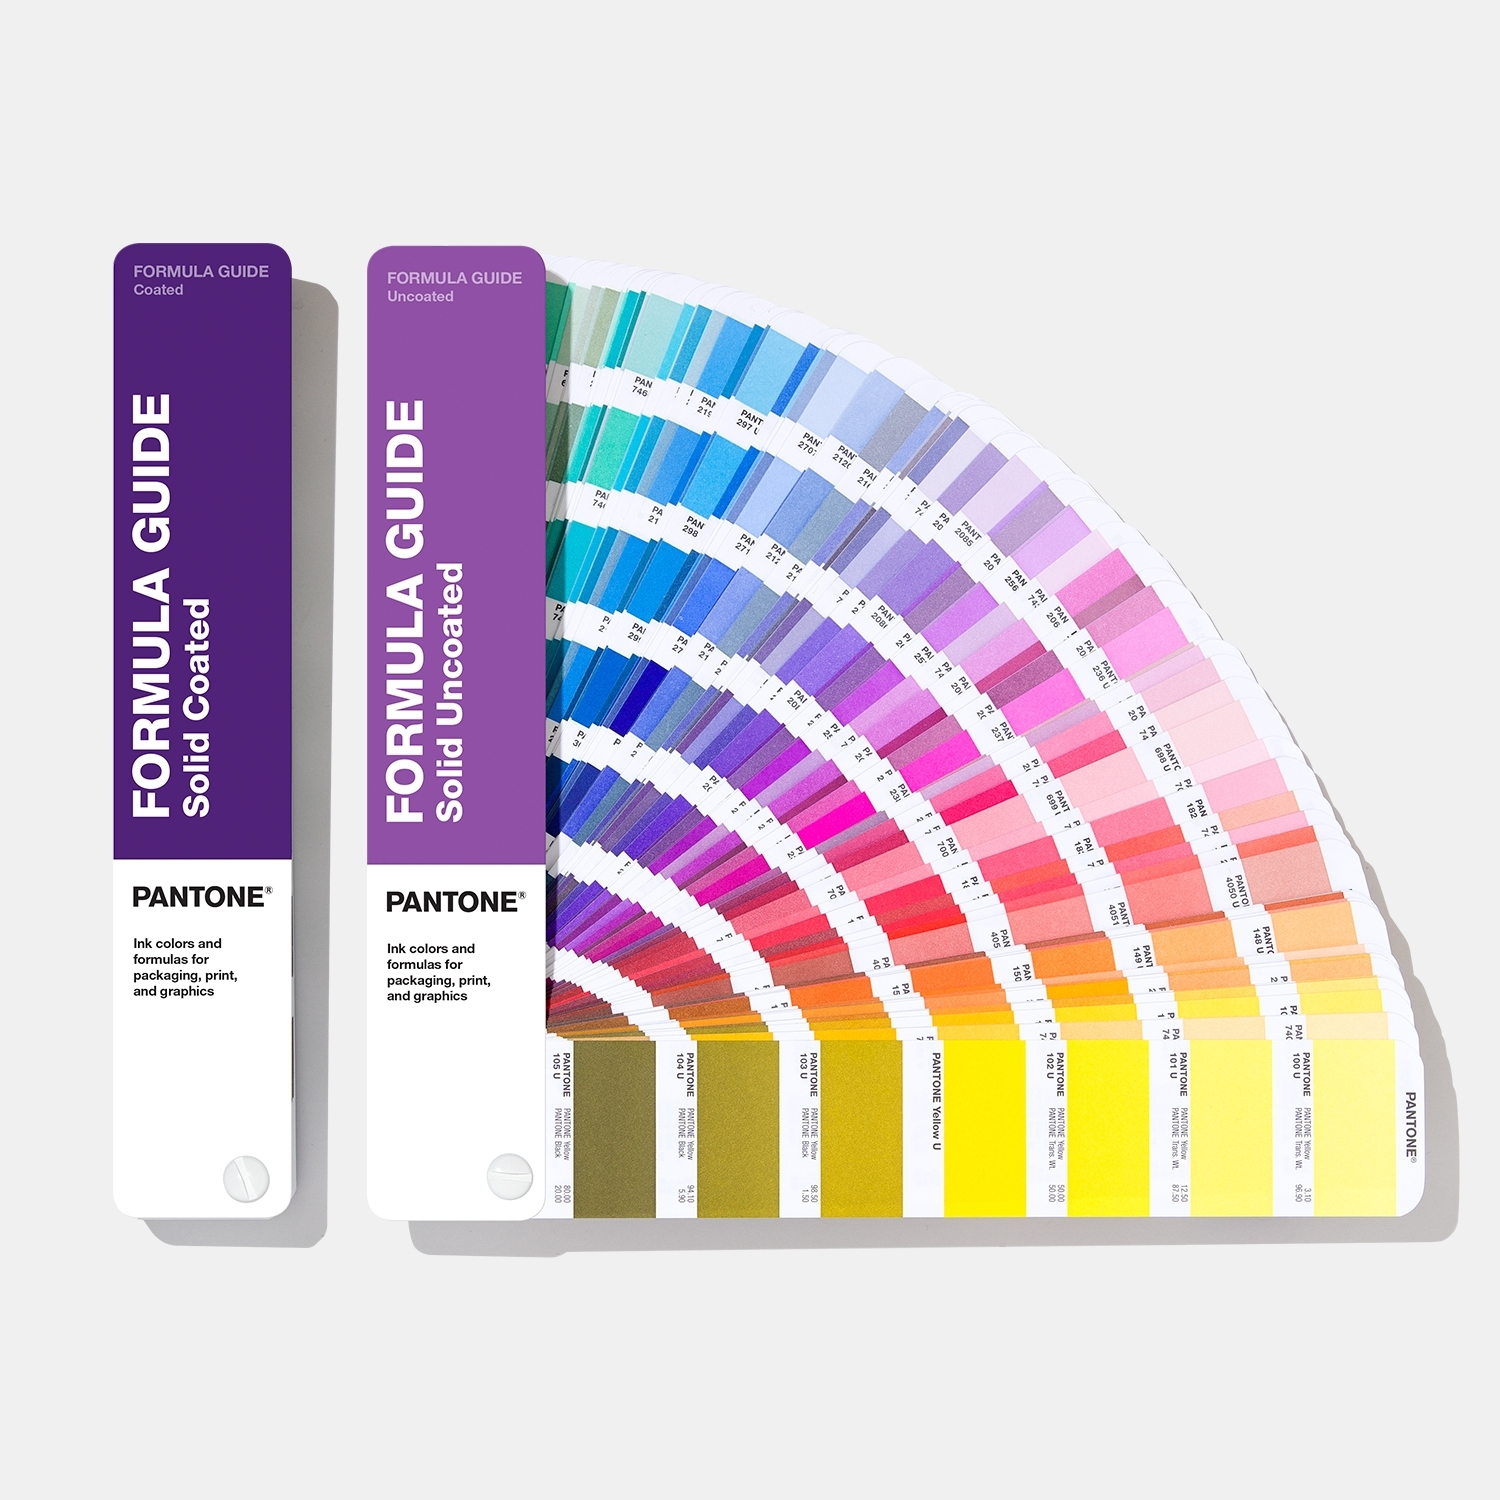 Pantone Formula Guide Coated & Uncoated - View 1